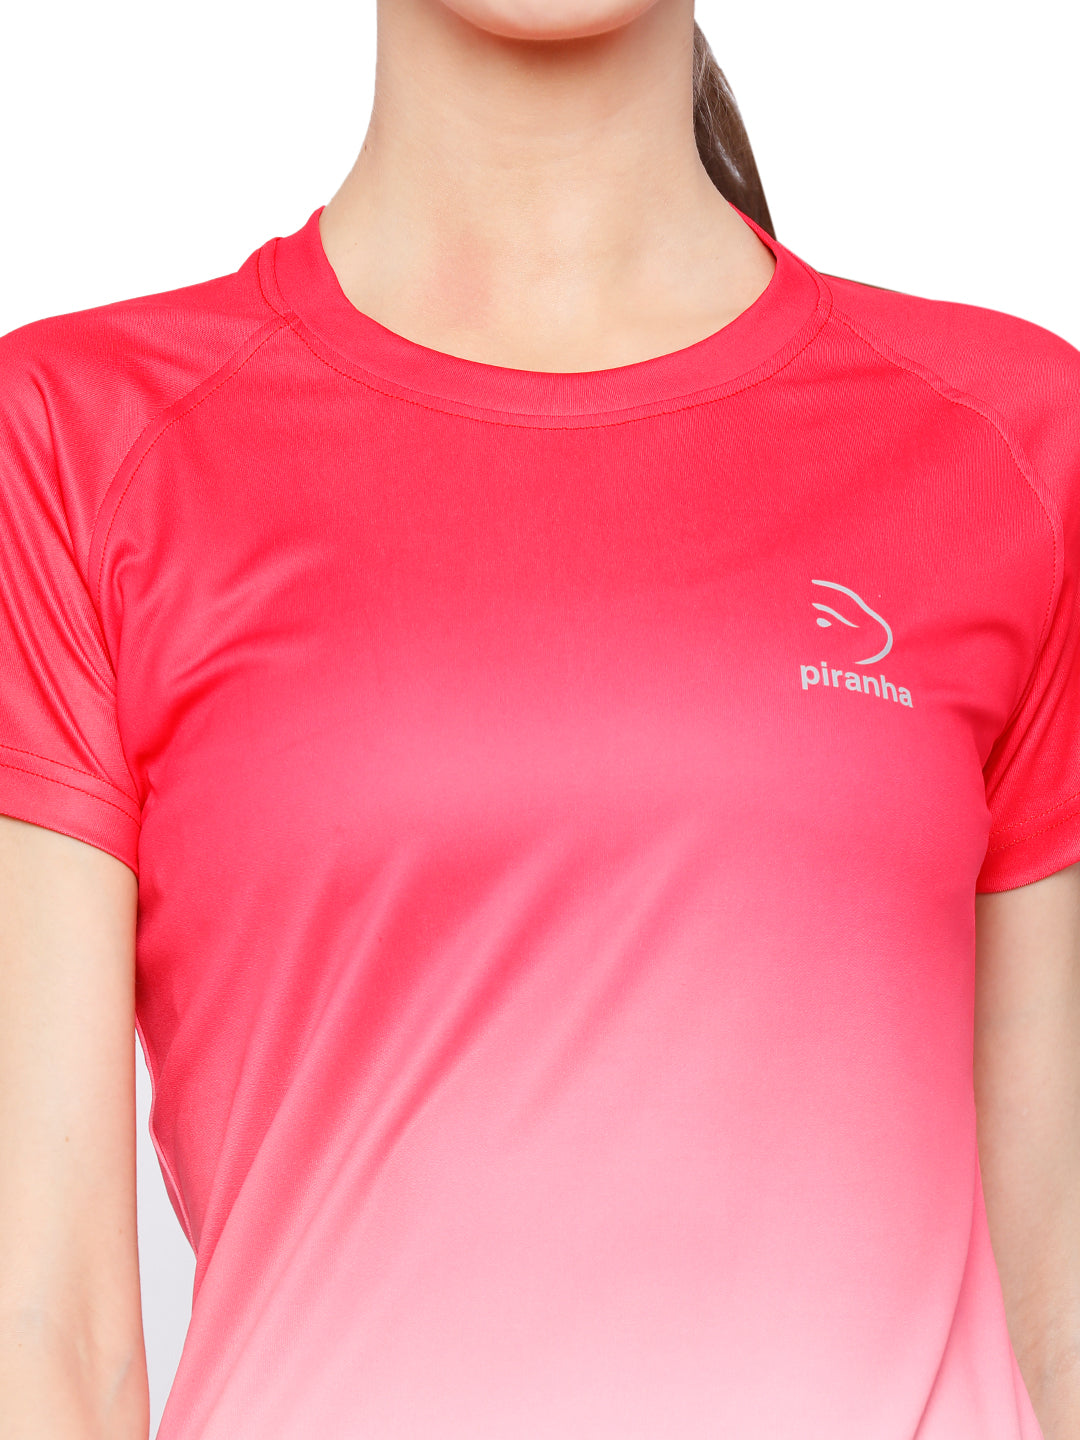 Piranha Women's Pink T-shirt TSG197